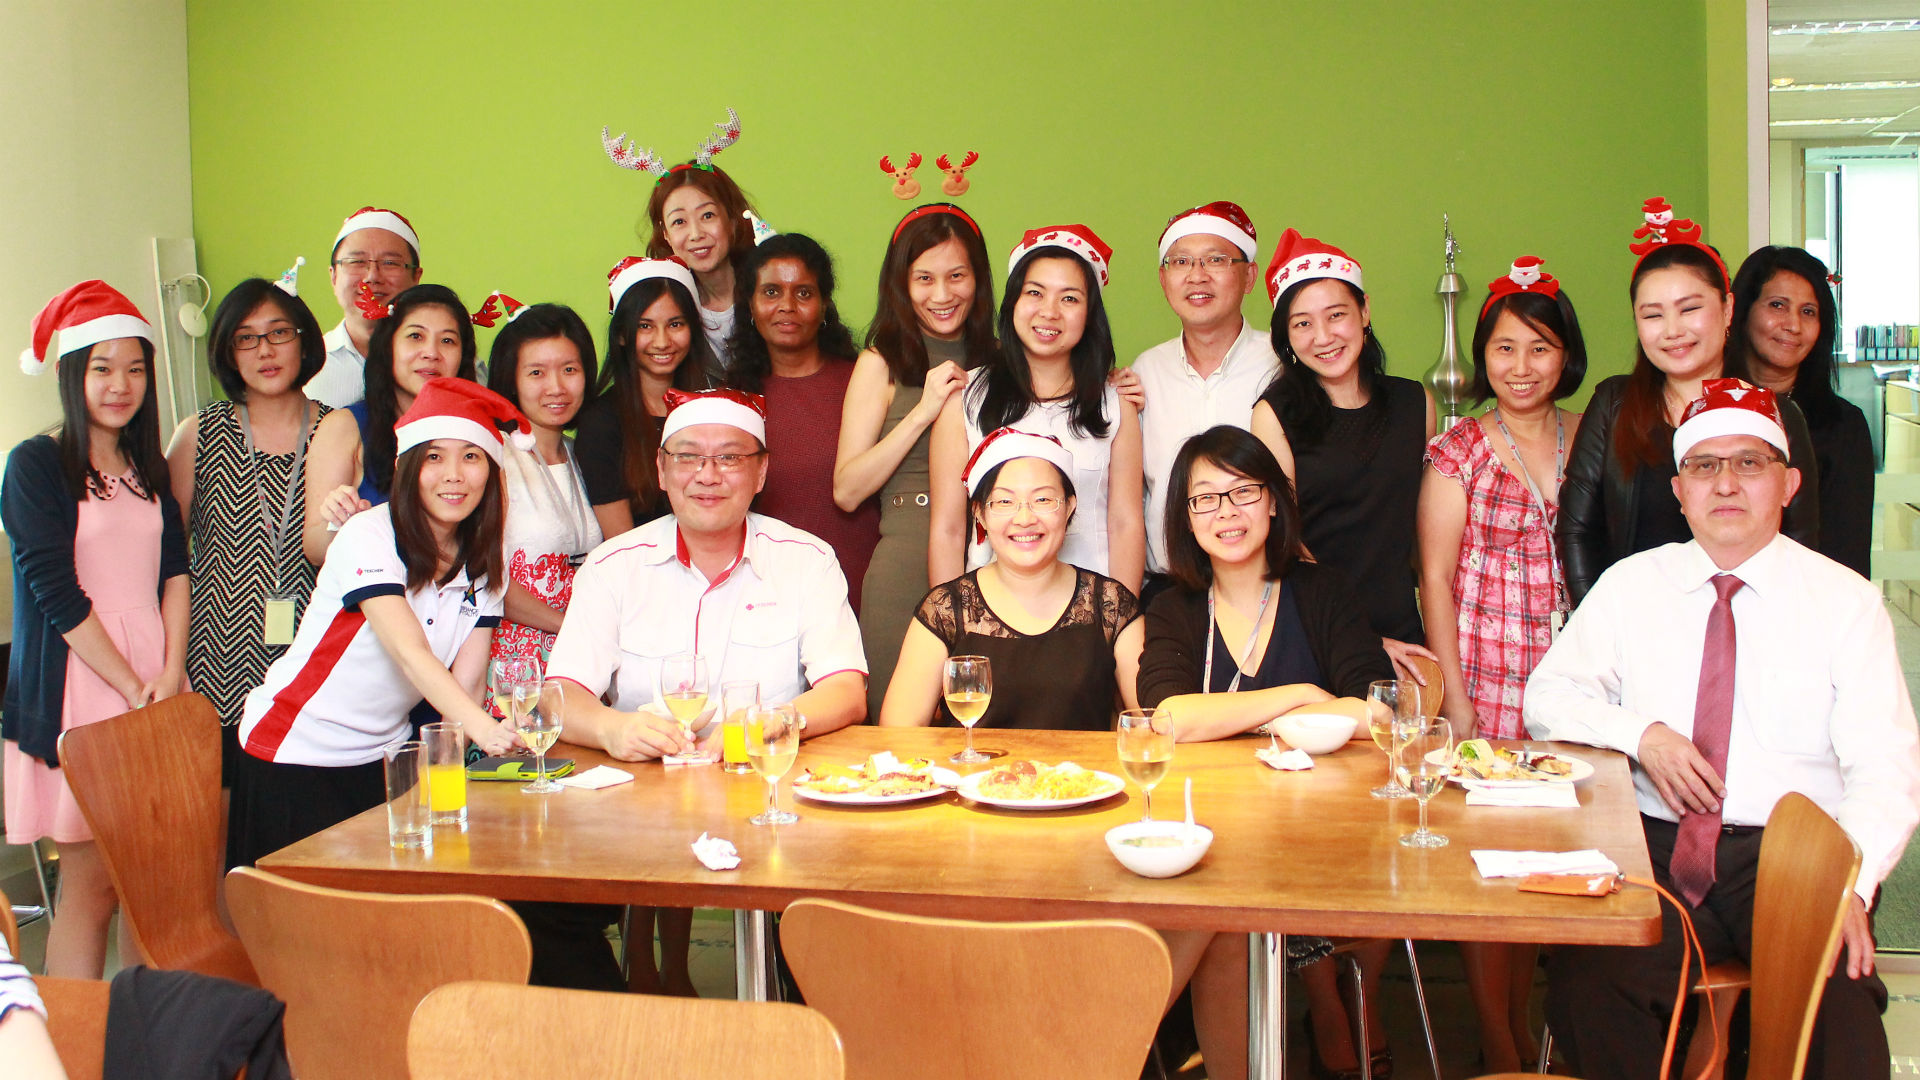 csr - Year End Office Party - 31 Dec 2015